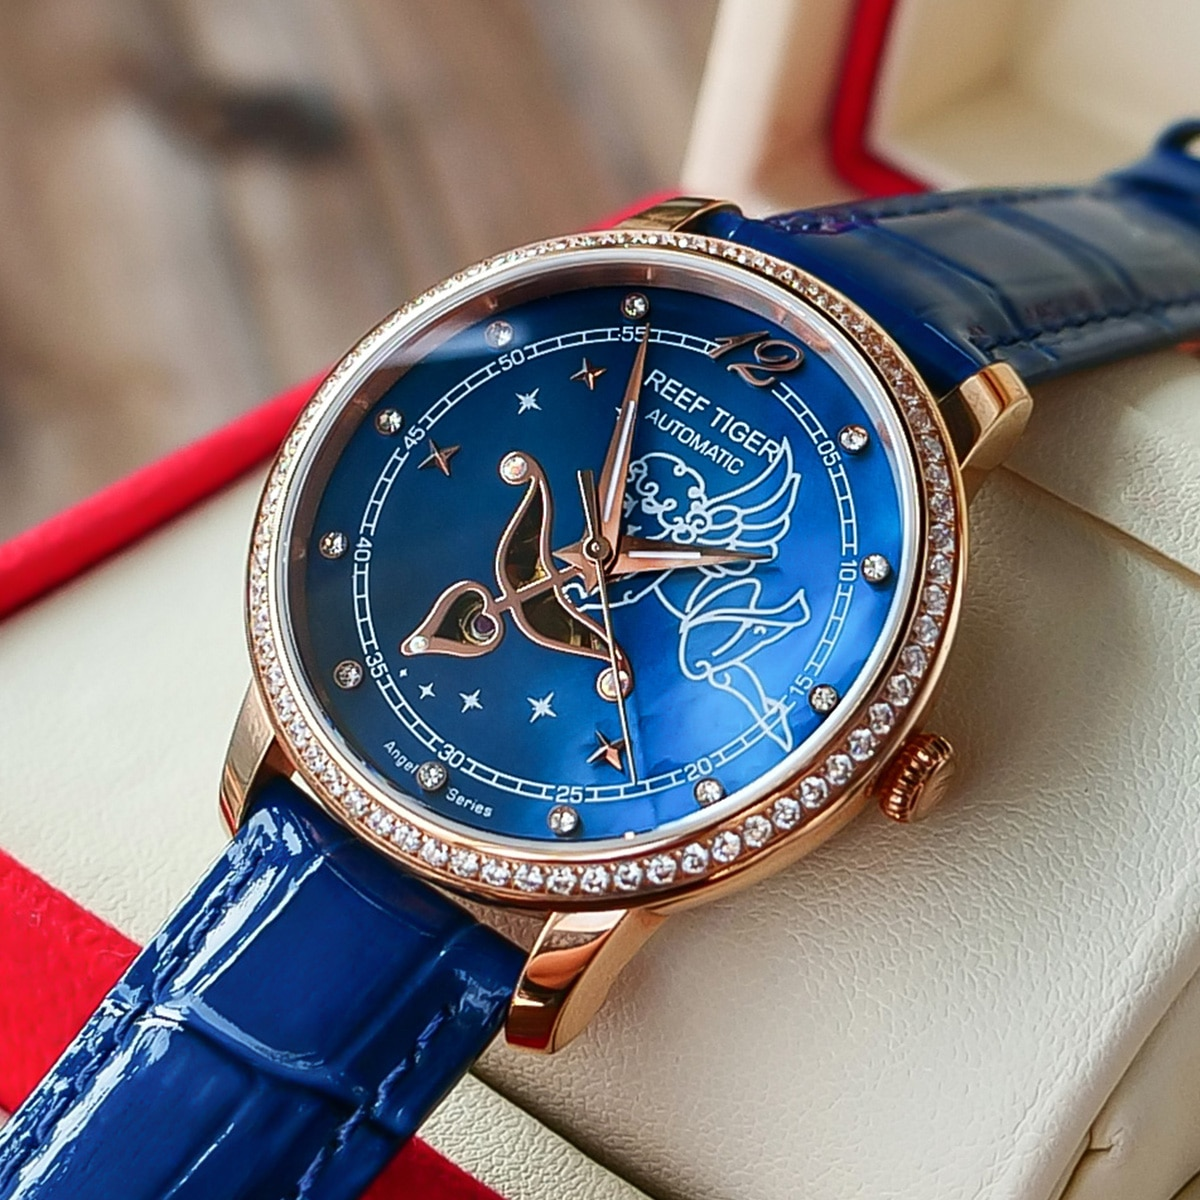 New Reef Tiger/RT Fashion Womens Watches Blue Dial Rose Gold Watches for Lover Diamonds Ladies Watches Relogio Feminino RGA1550 enlarge